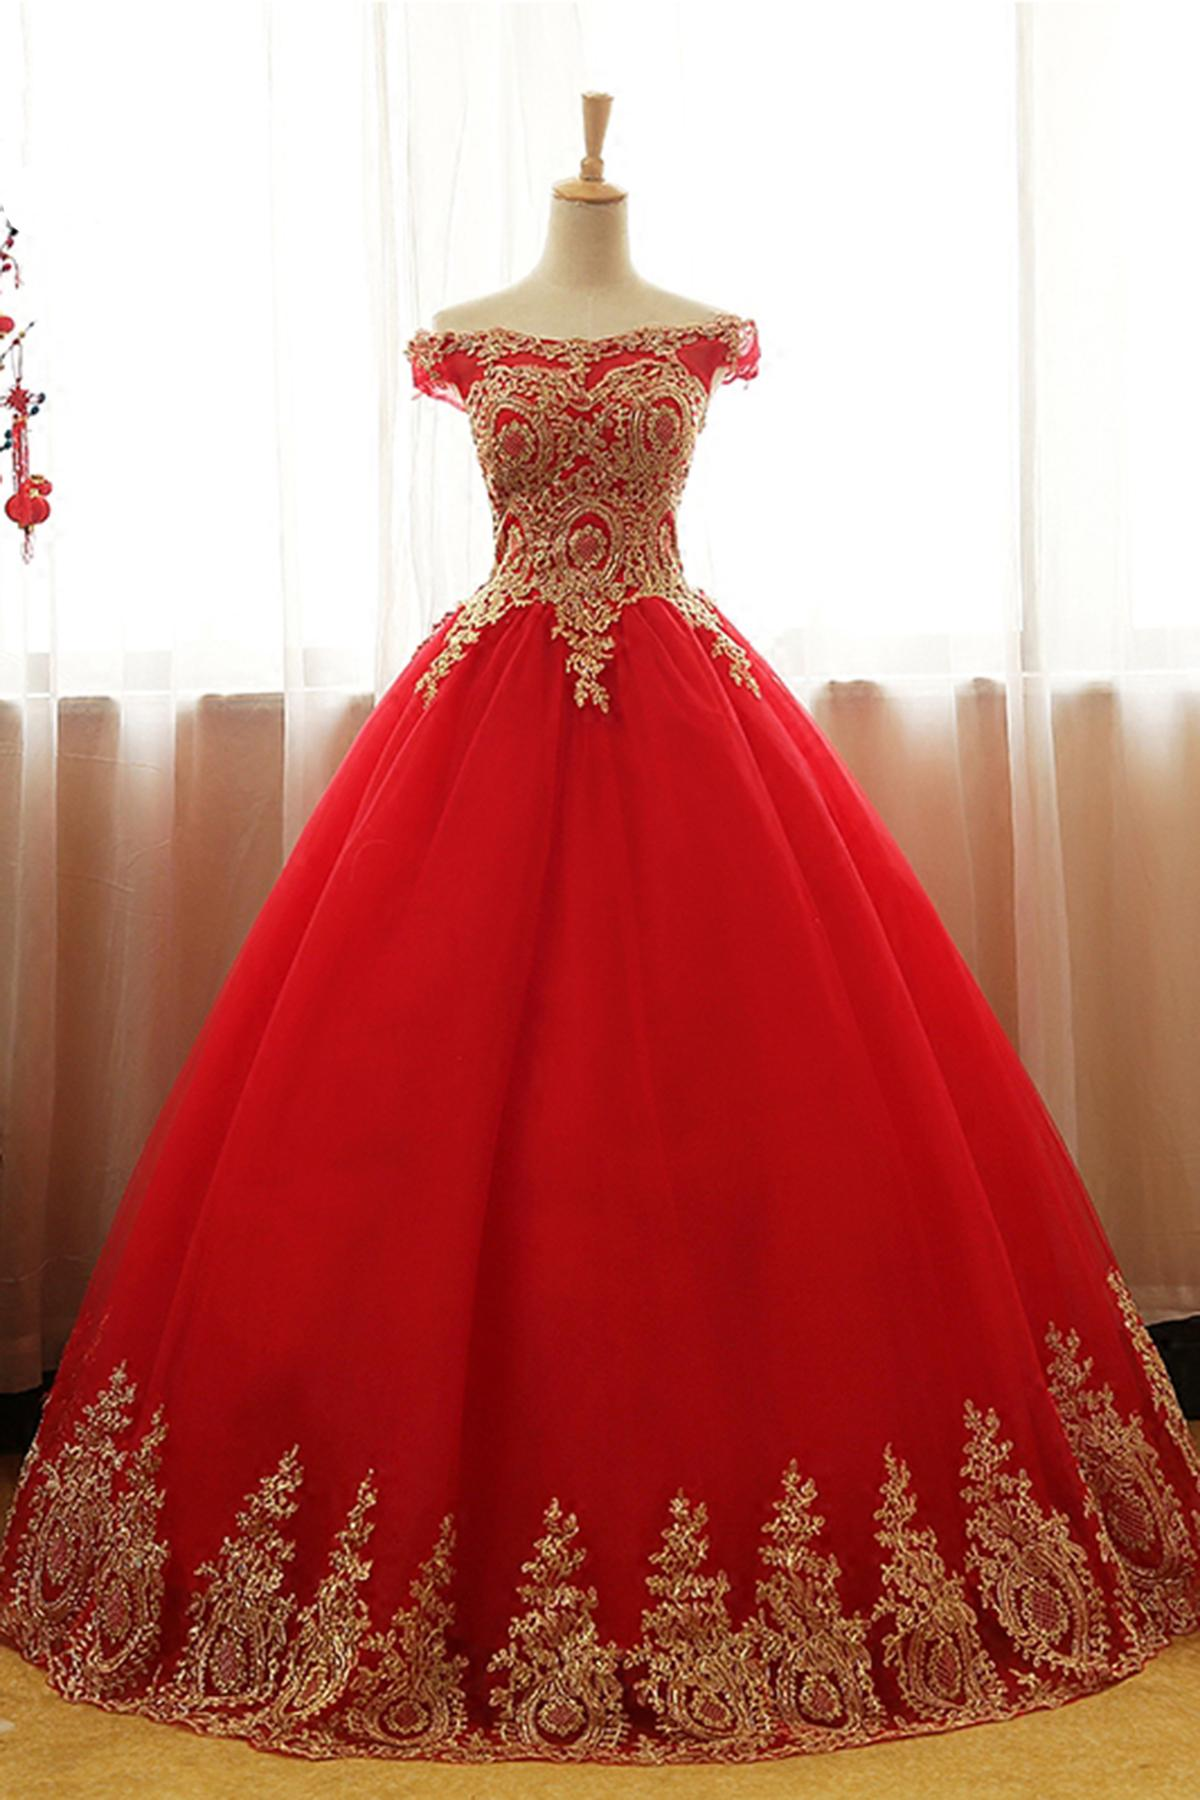 Off The Shoulder Red Quinceanera Dress With Gold Appliques Sweet 15 16 Birthday Party Dress From Weddres 150 76 Dhgate Com